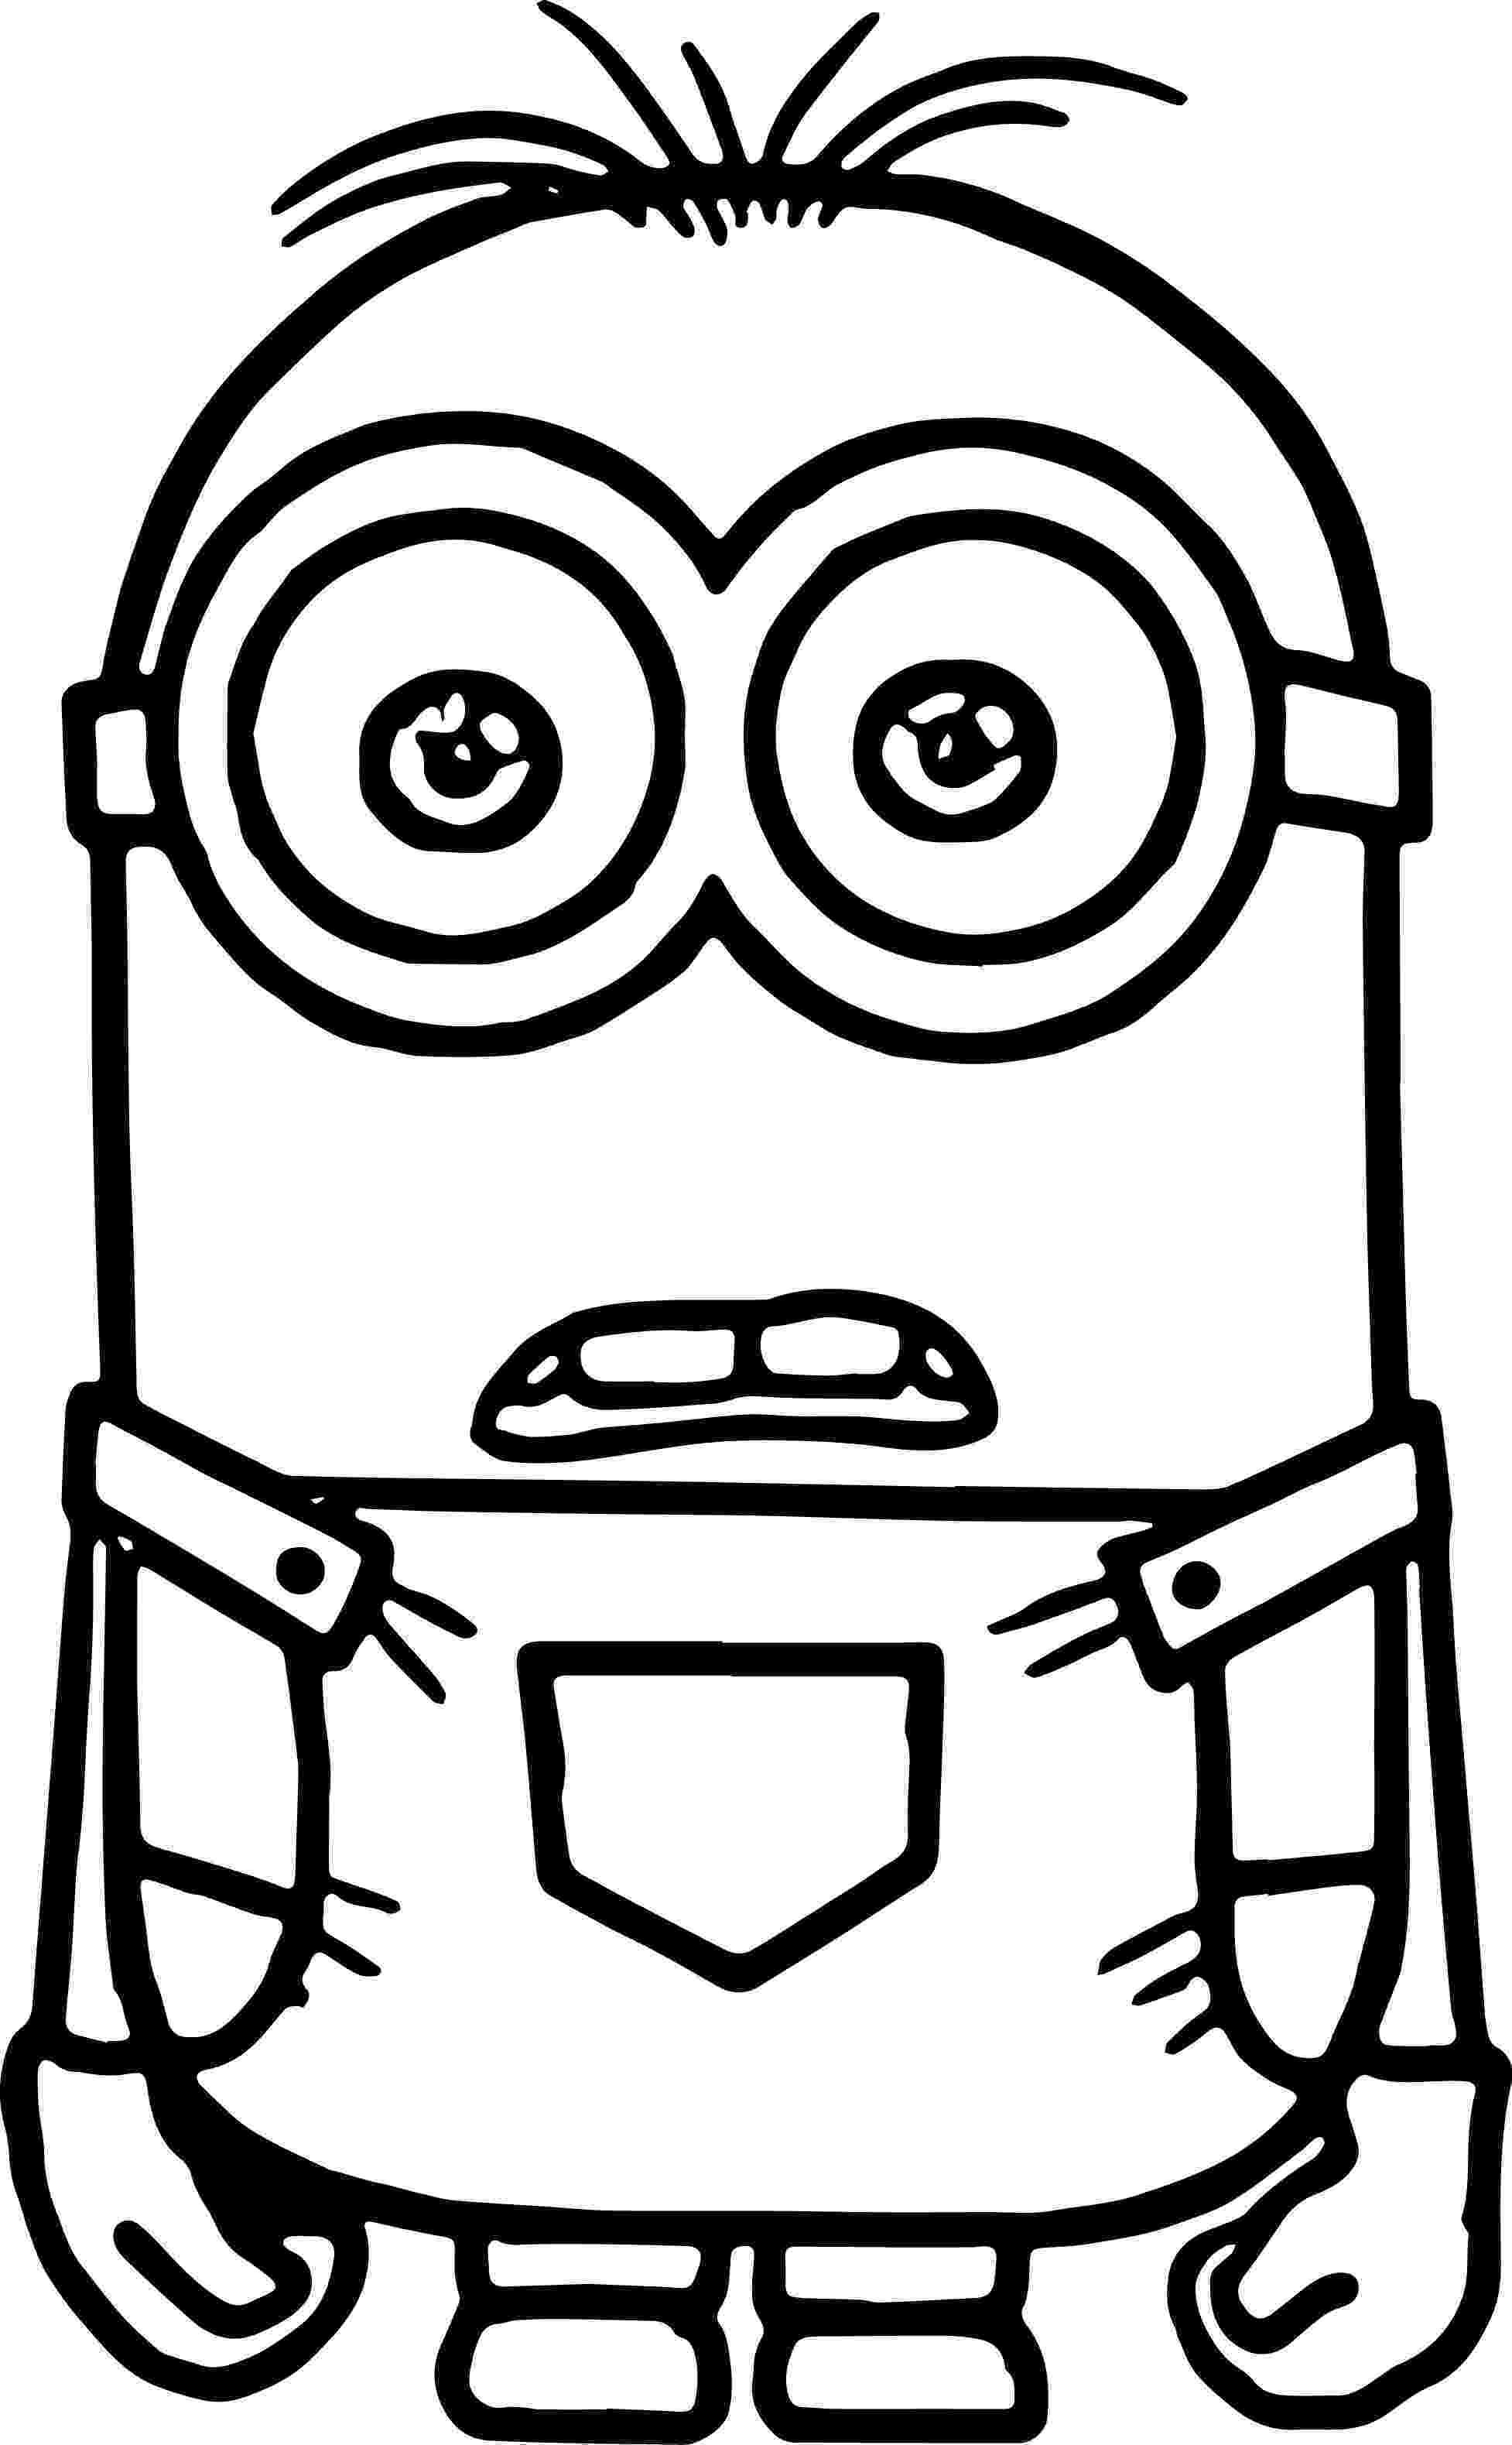 printable colouring pages minions minion coloring pages fotolipcom rich image and wallpaper colouring minions pages printable